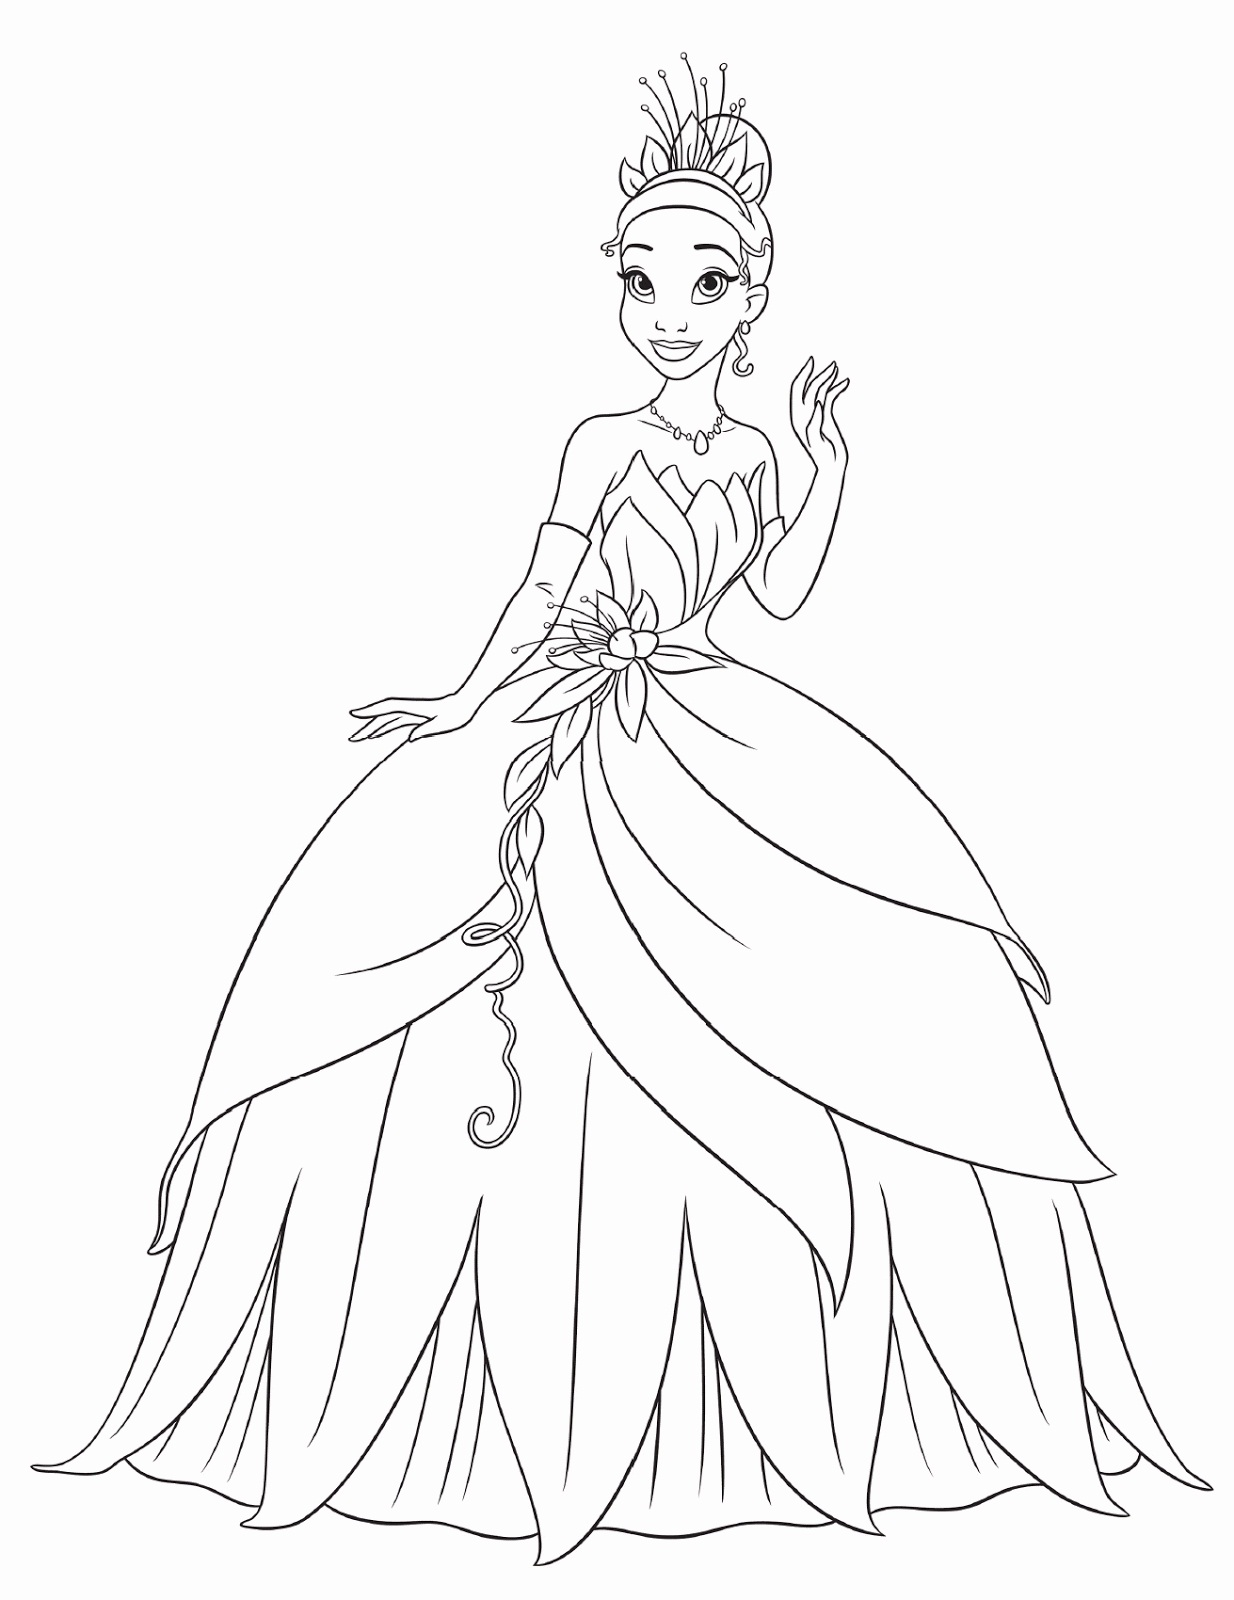 Free Printable Princess Tiana Coloring